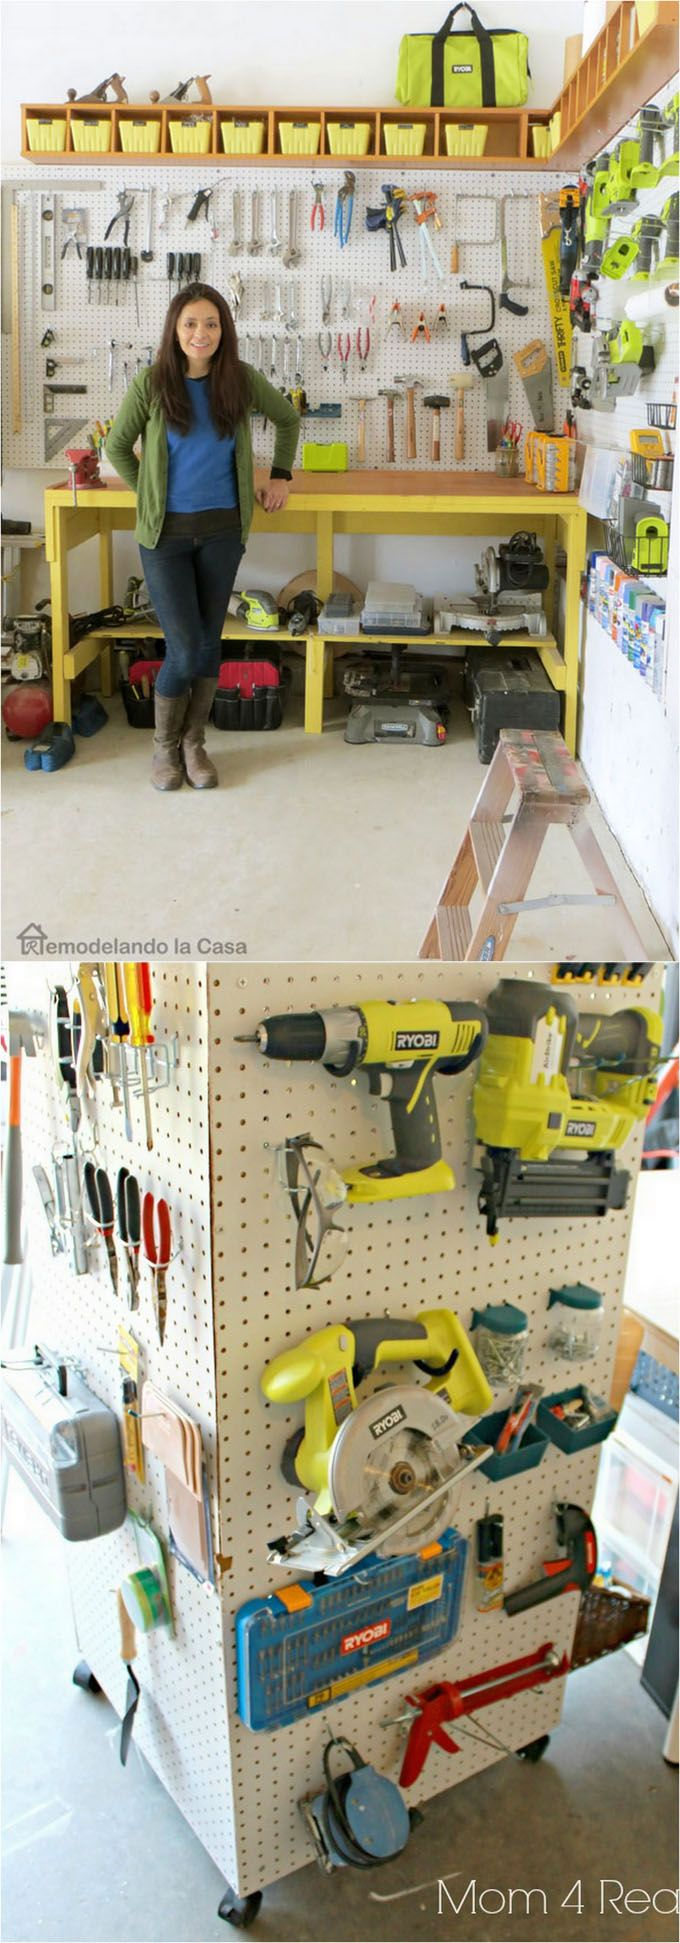 21 great ways to completely organize your workshop or craft room: how to best utilize pegboards, shelving, closet and wall spaces, and much more! - A Piece Of Rainbow